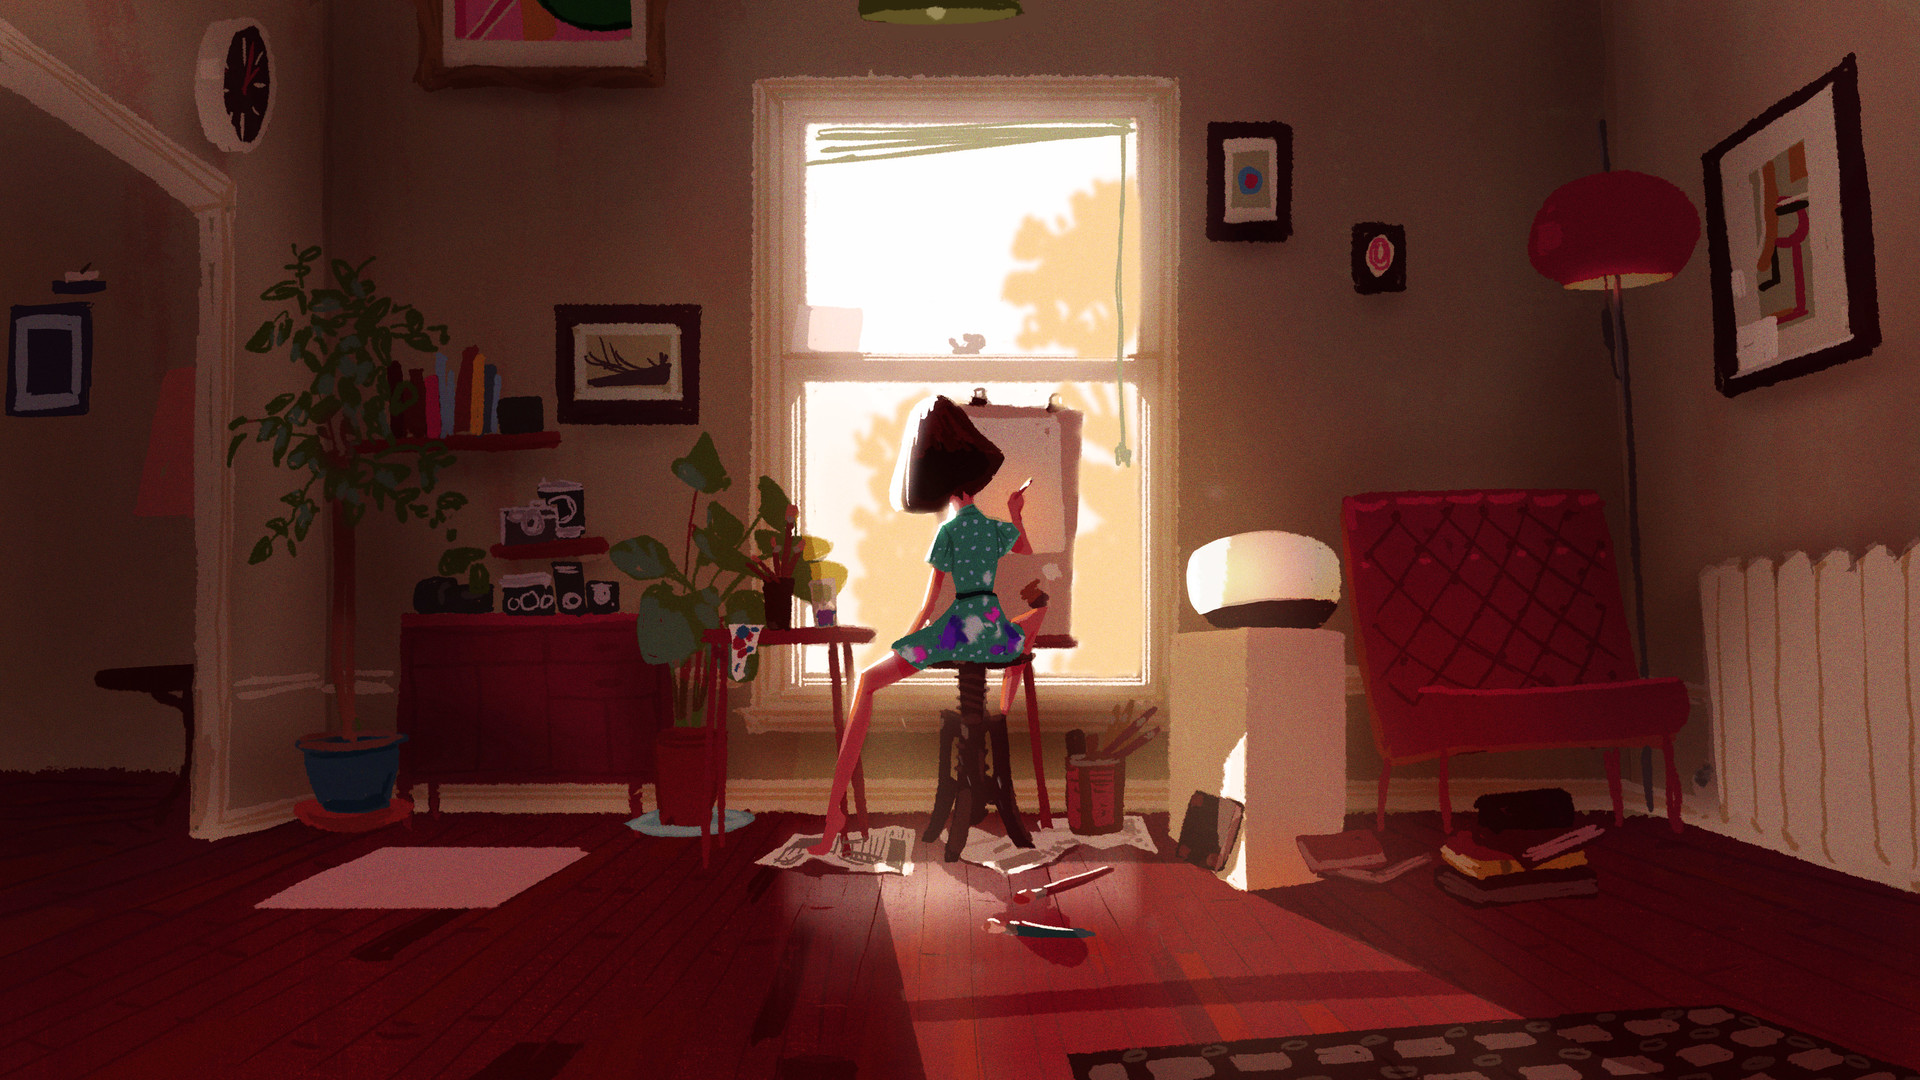 mike redman digital painting illustration Living Room Studio Morning